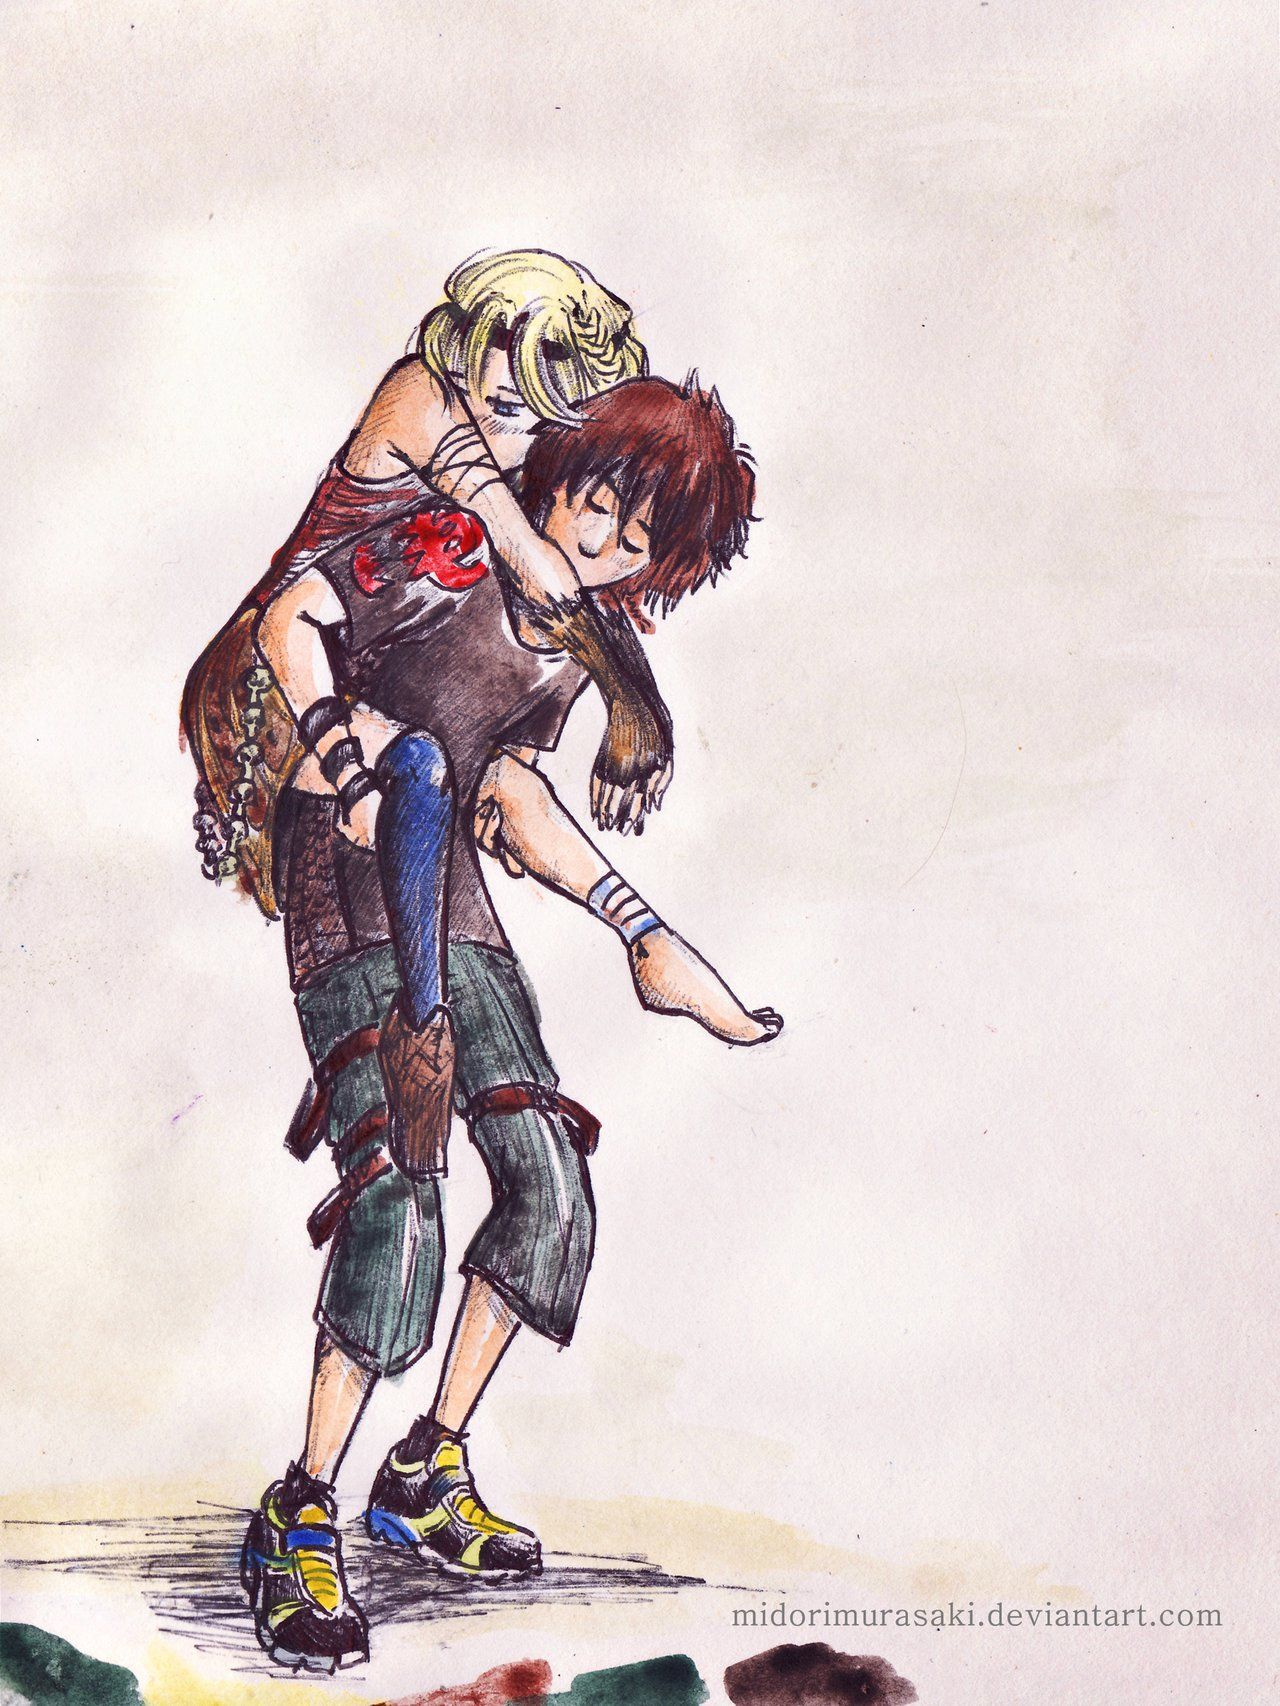 How To Comfort Your Astrid by MidoriMurasaki.deviantart.com on @deviantART